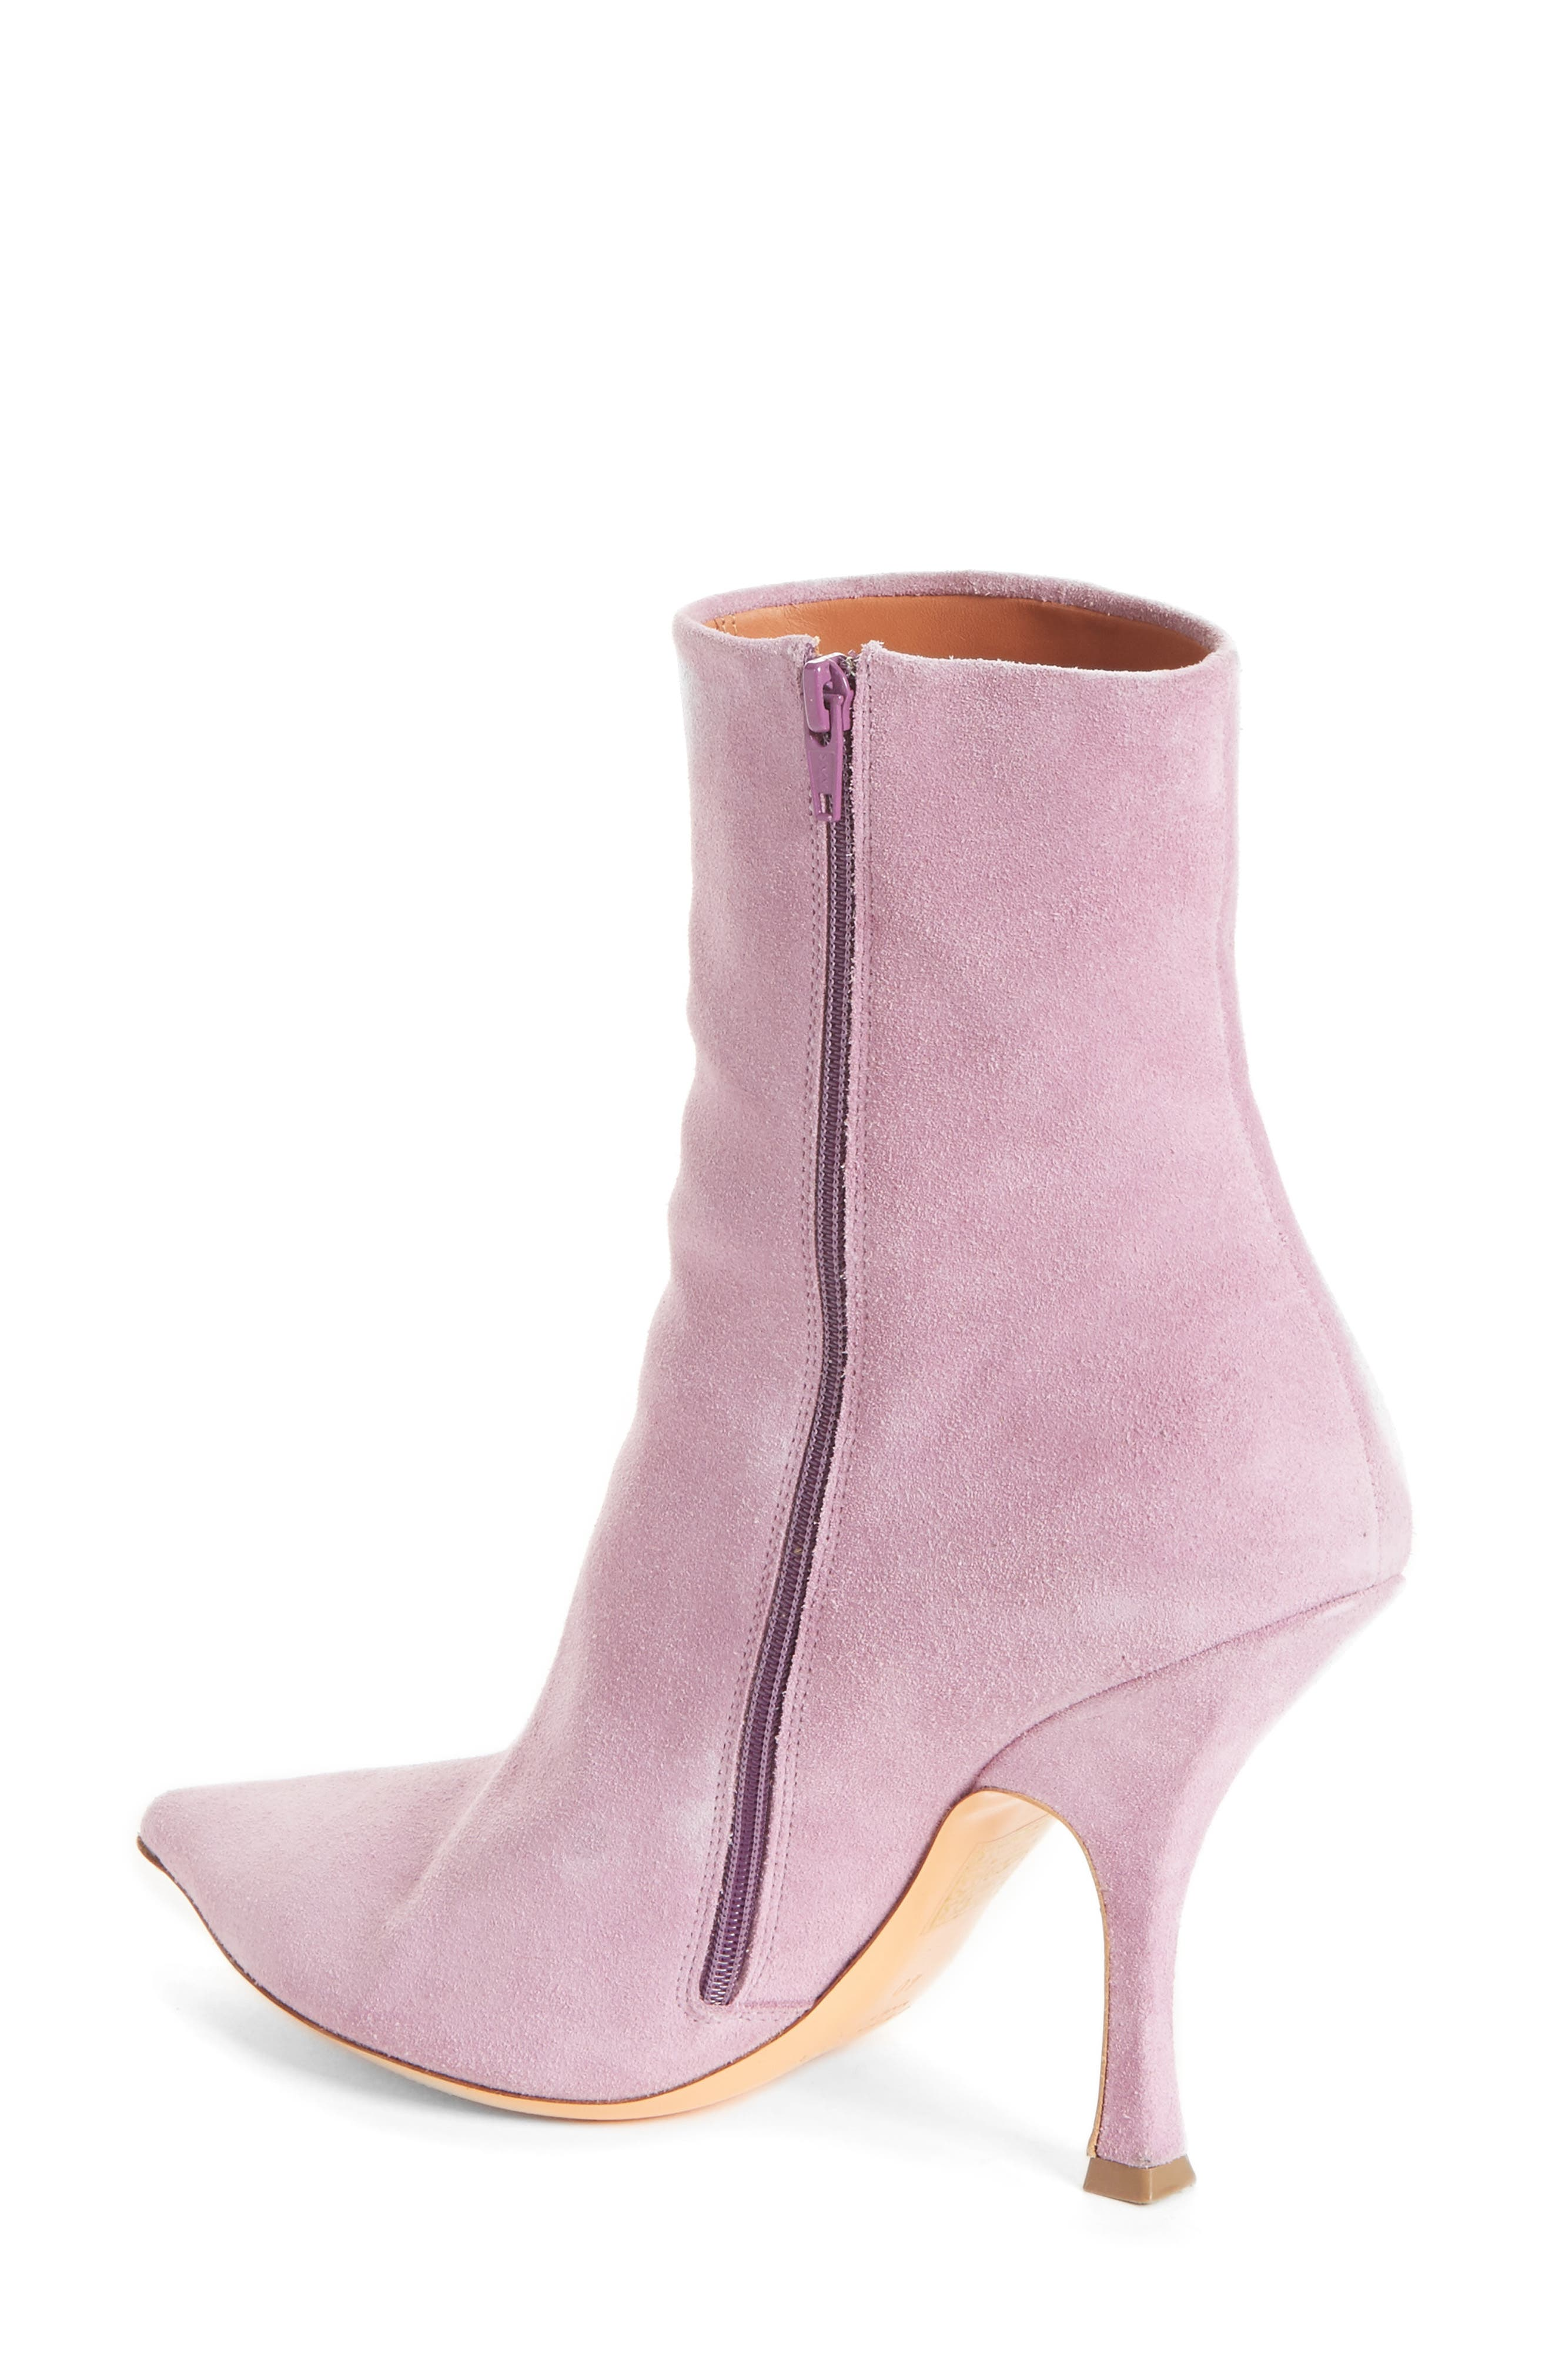 Suede Ankle Boot,                             Alternate thumbnail 2, color,                             500